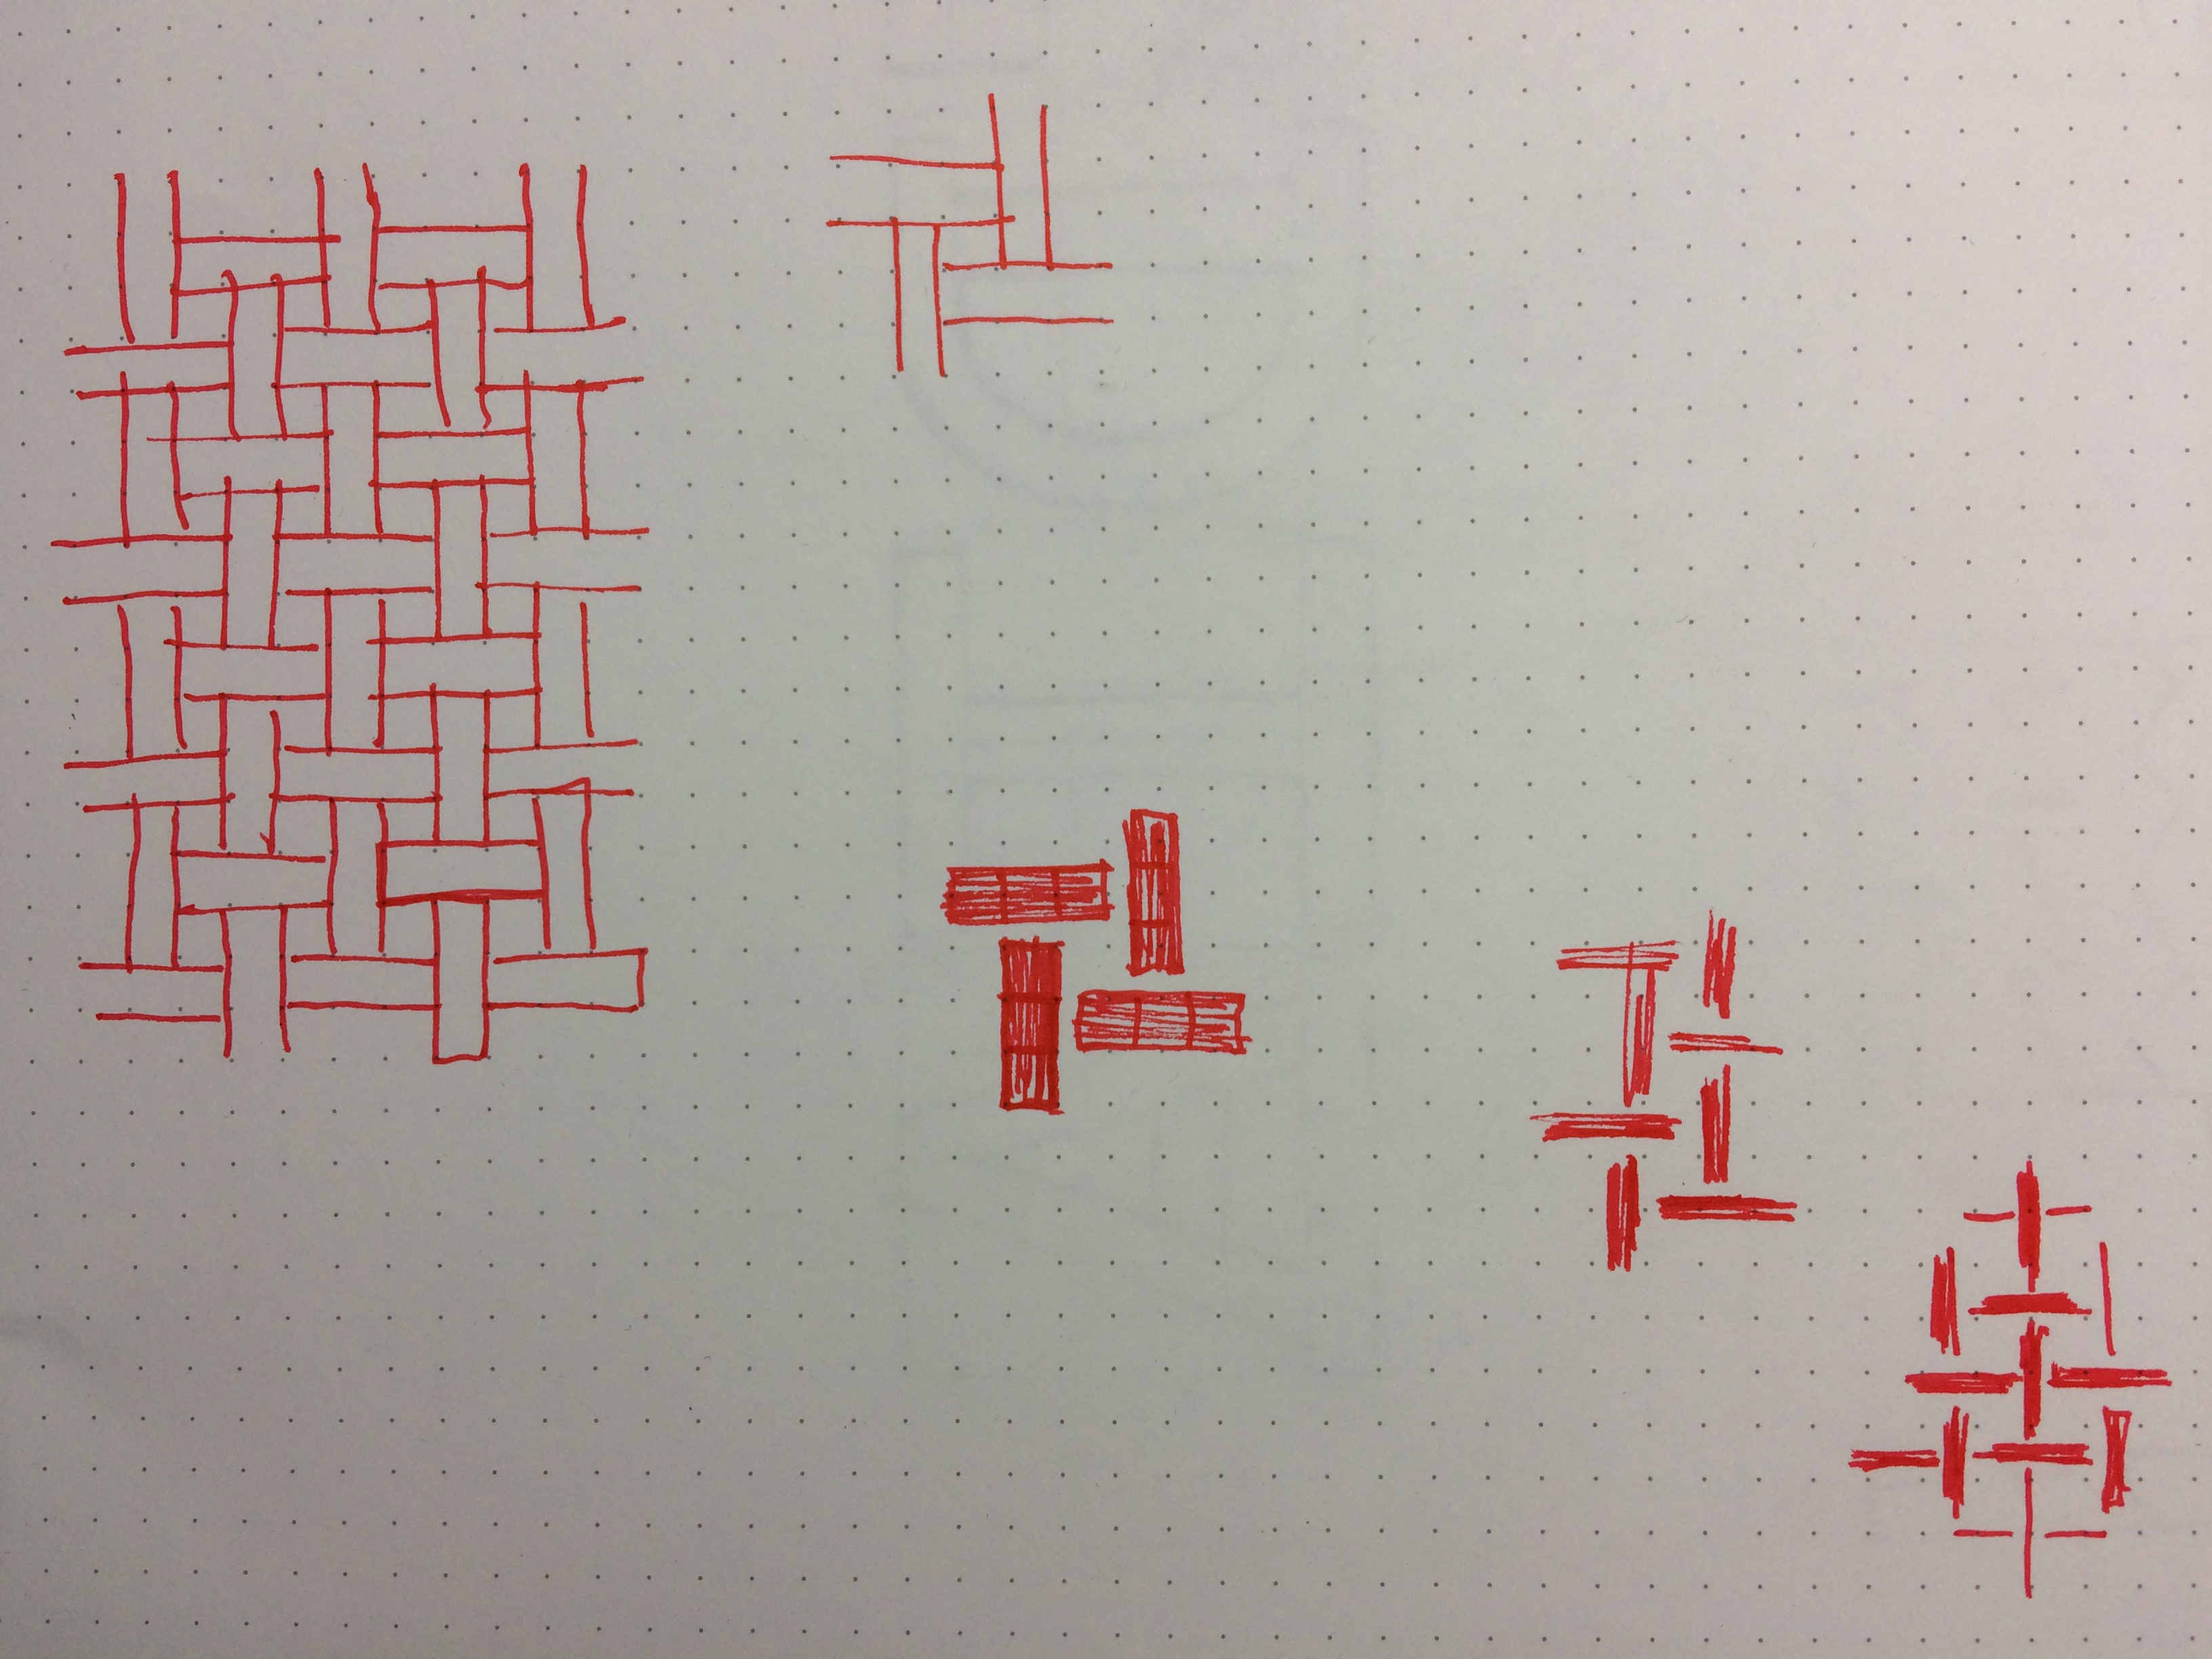 Sketch of the Pattern